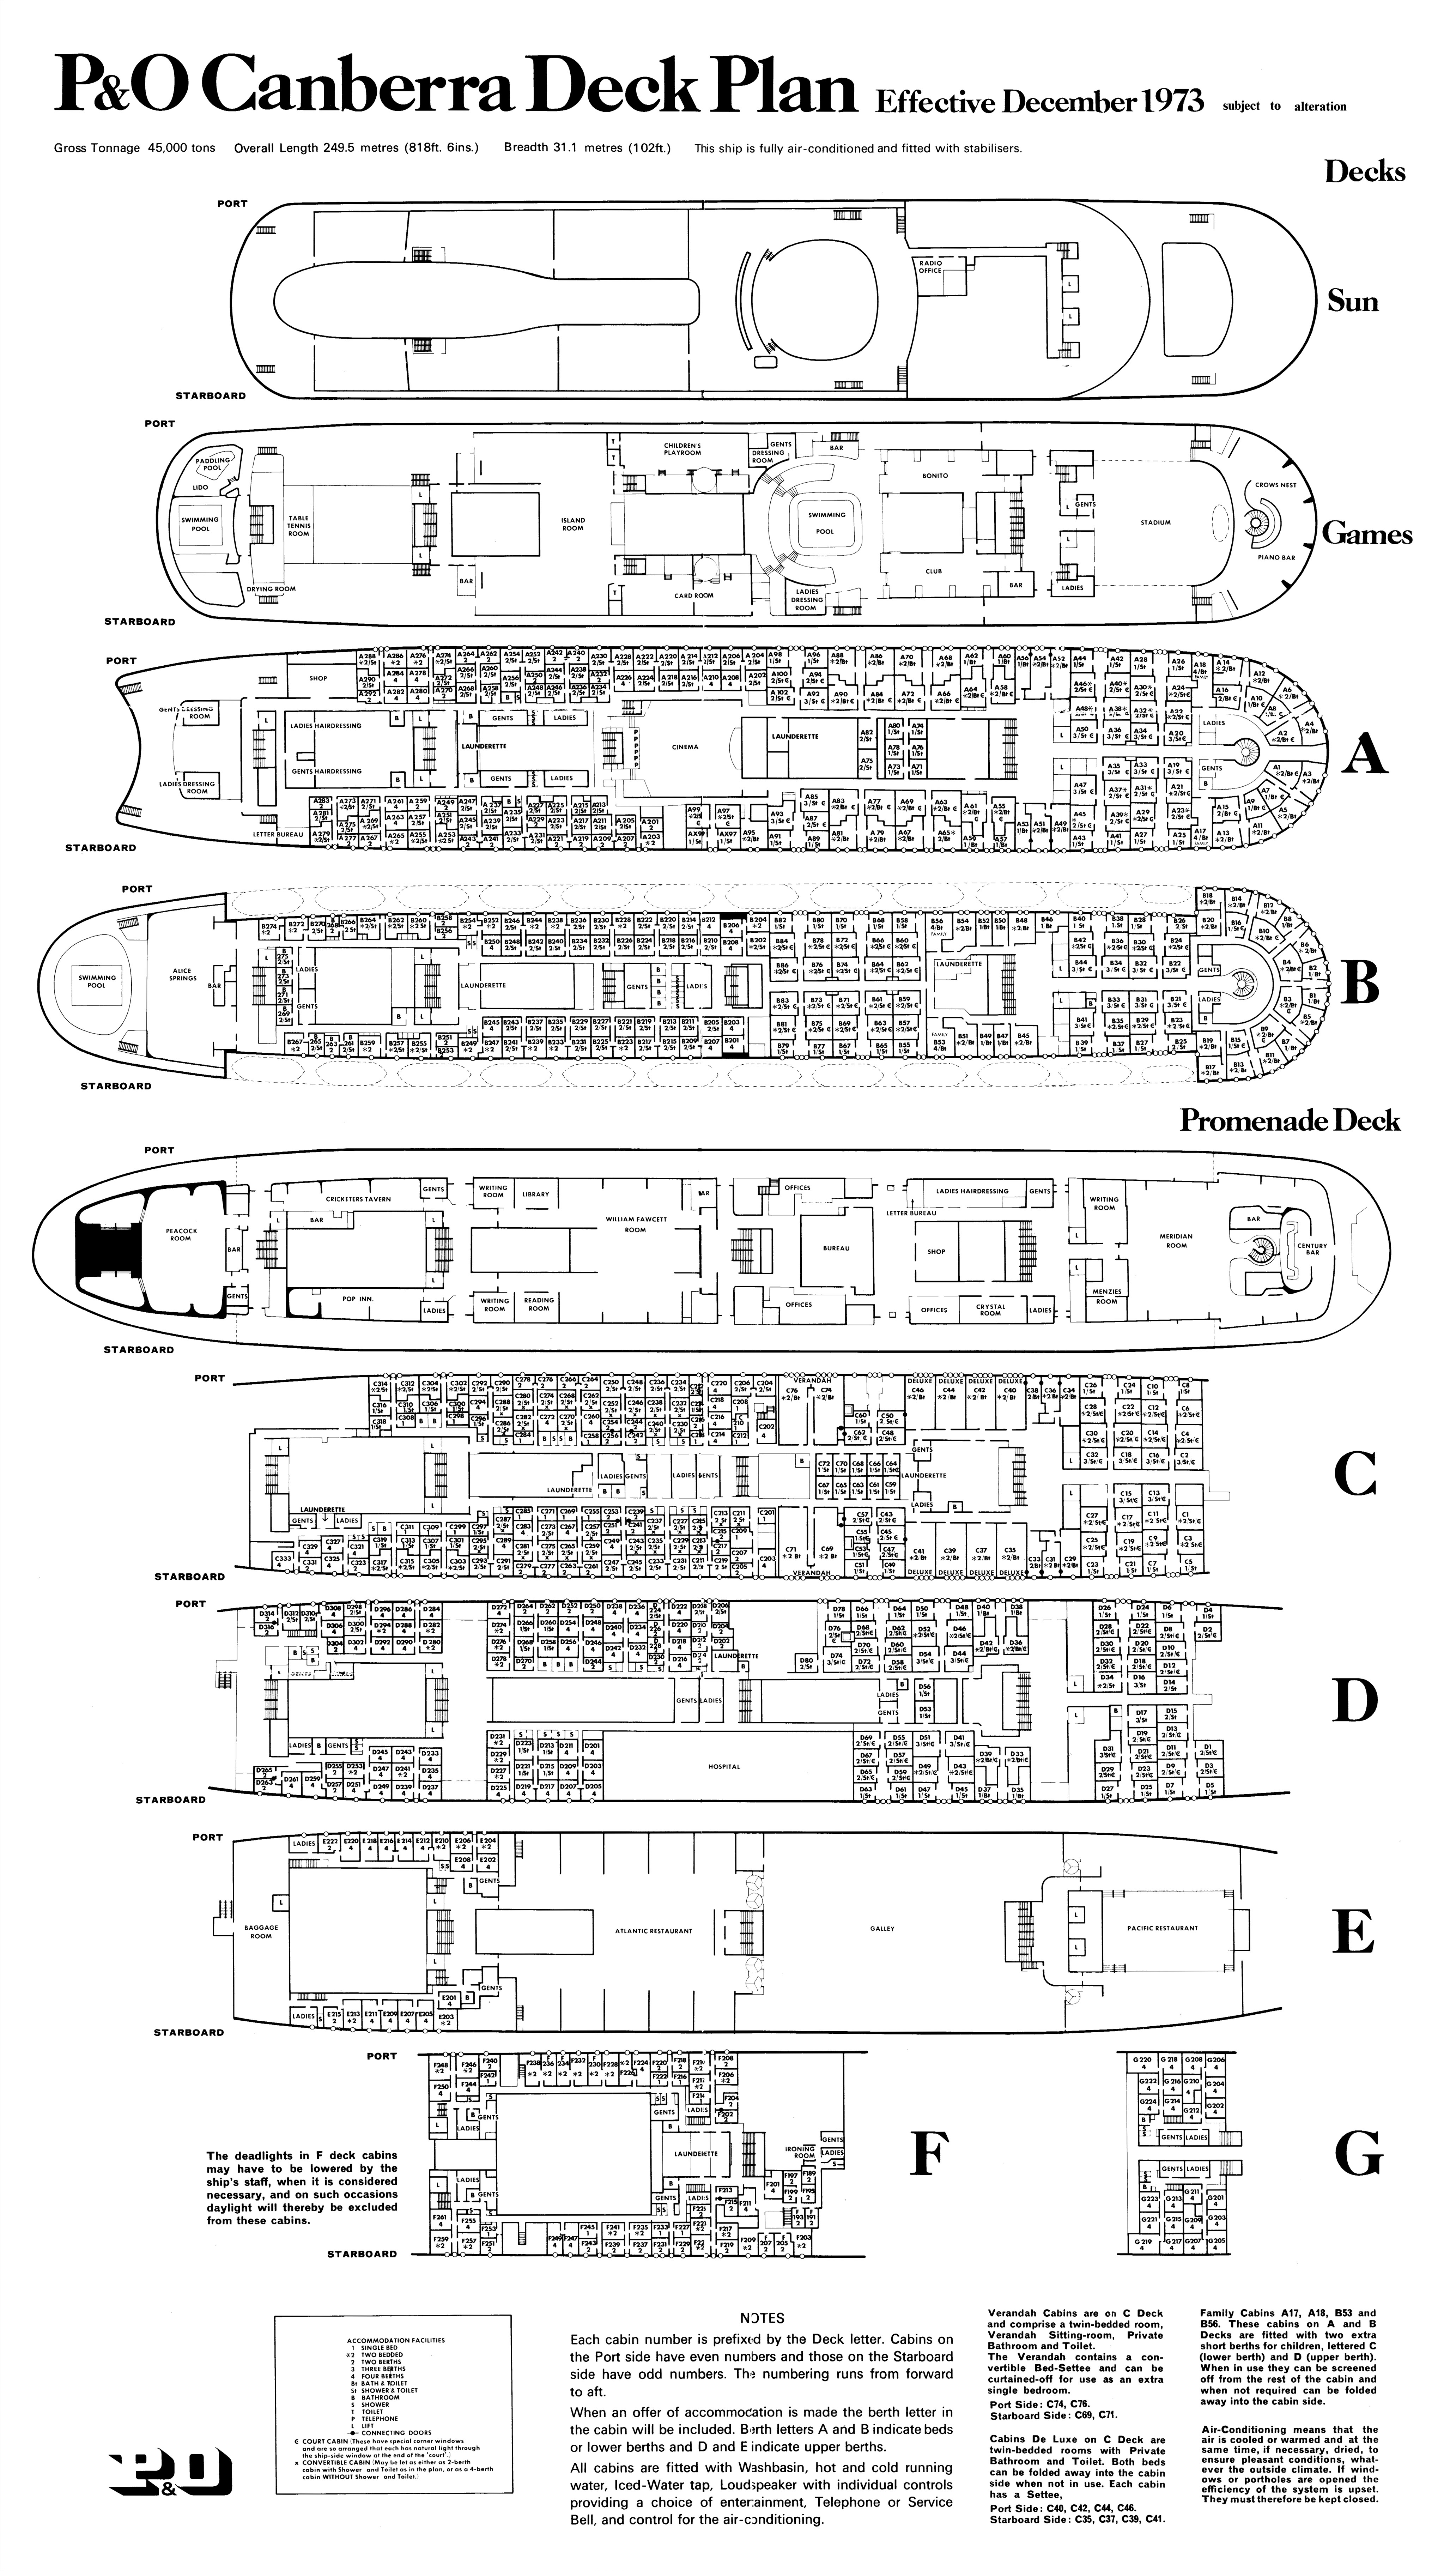 Royal Caribbean Deck Plans Cruise Ship Deck Plans Ship